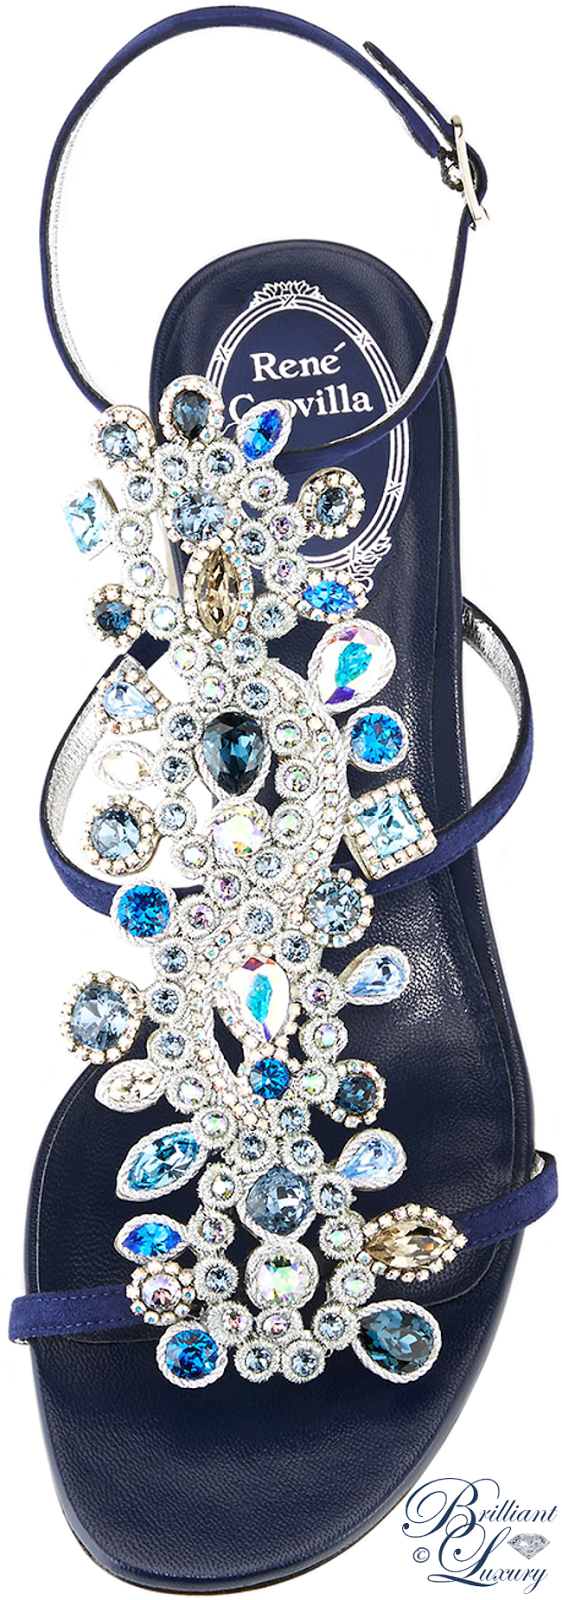 Brilliant Luxury ♦ Rene Caovilla Crystal Jeweled Block-Heel Sandal